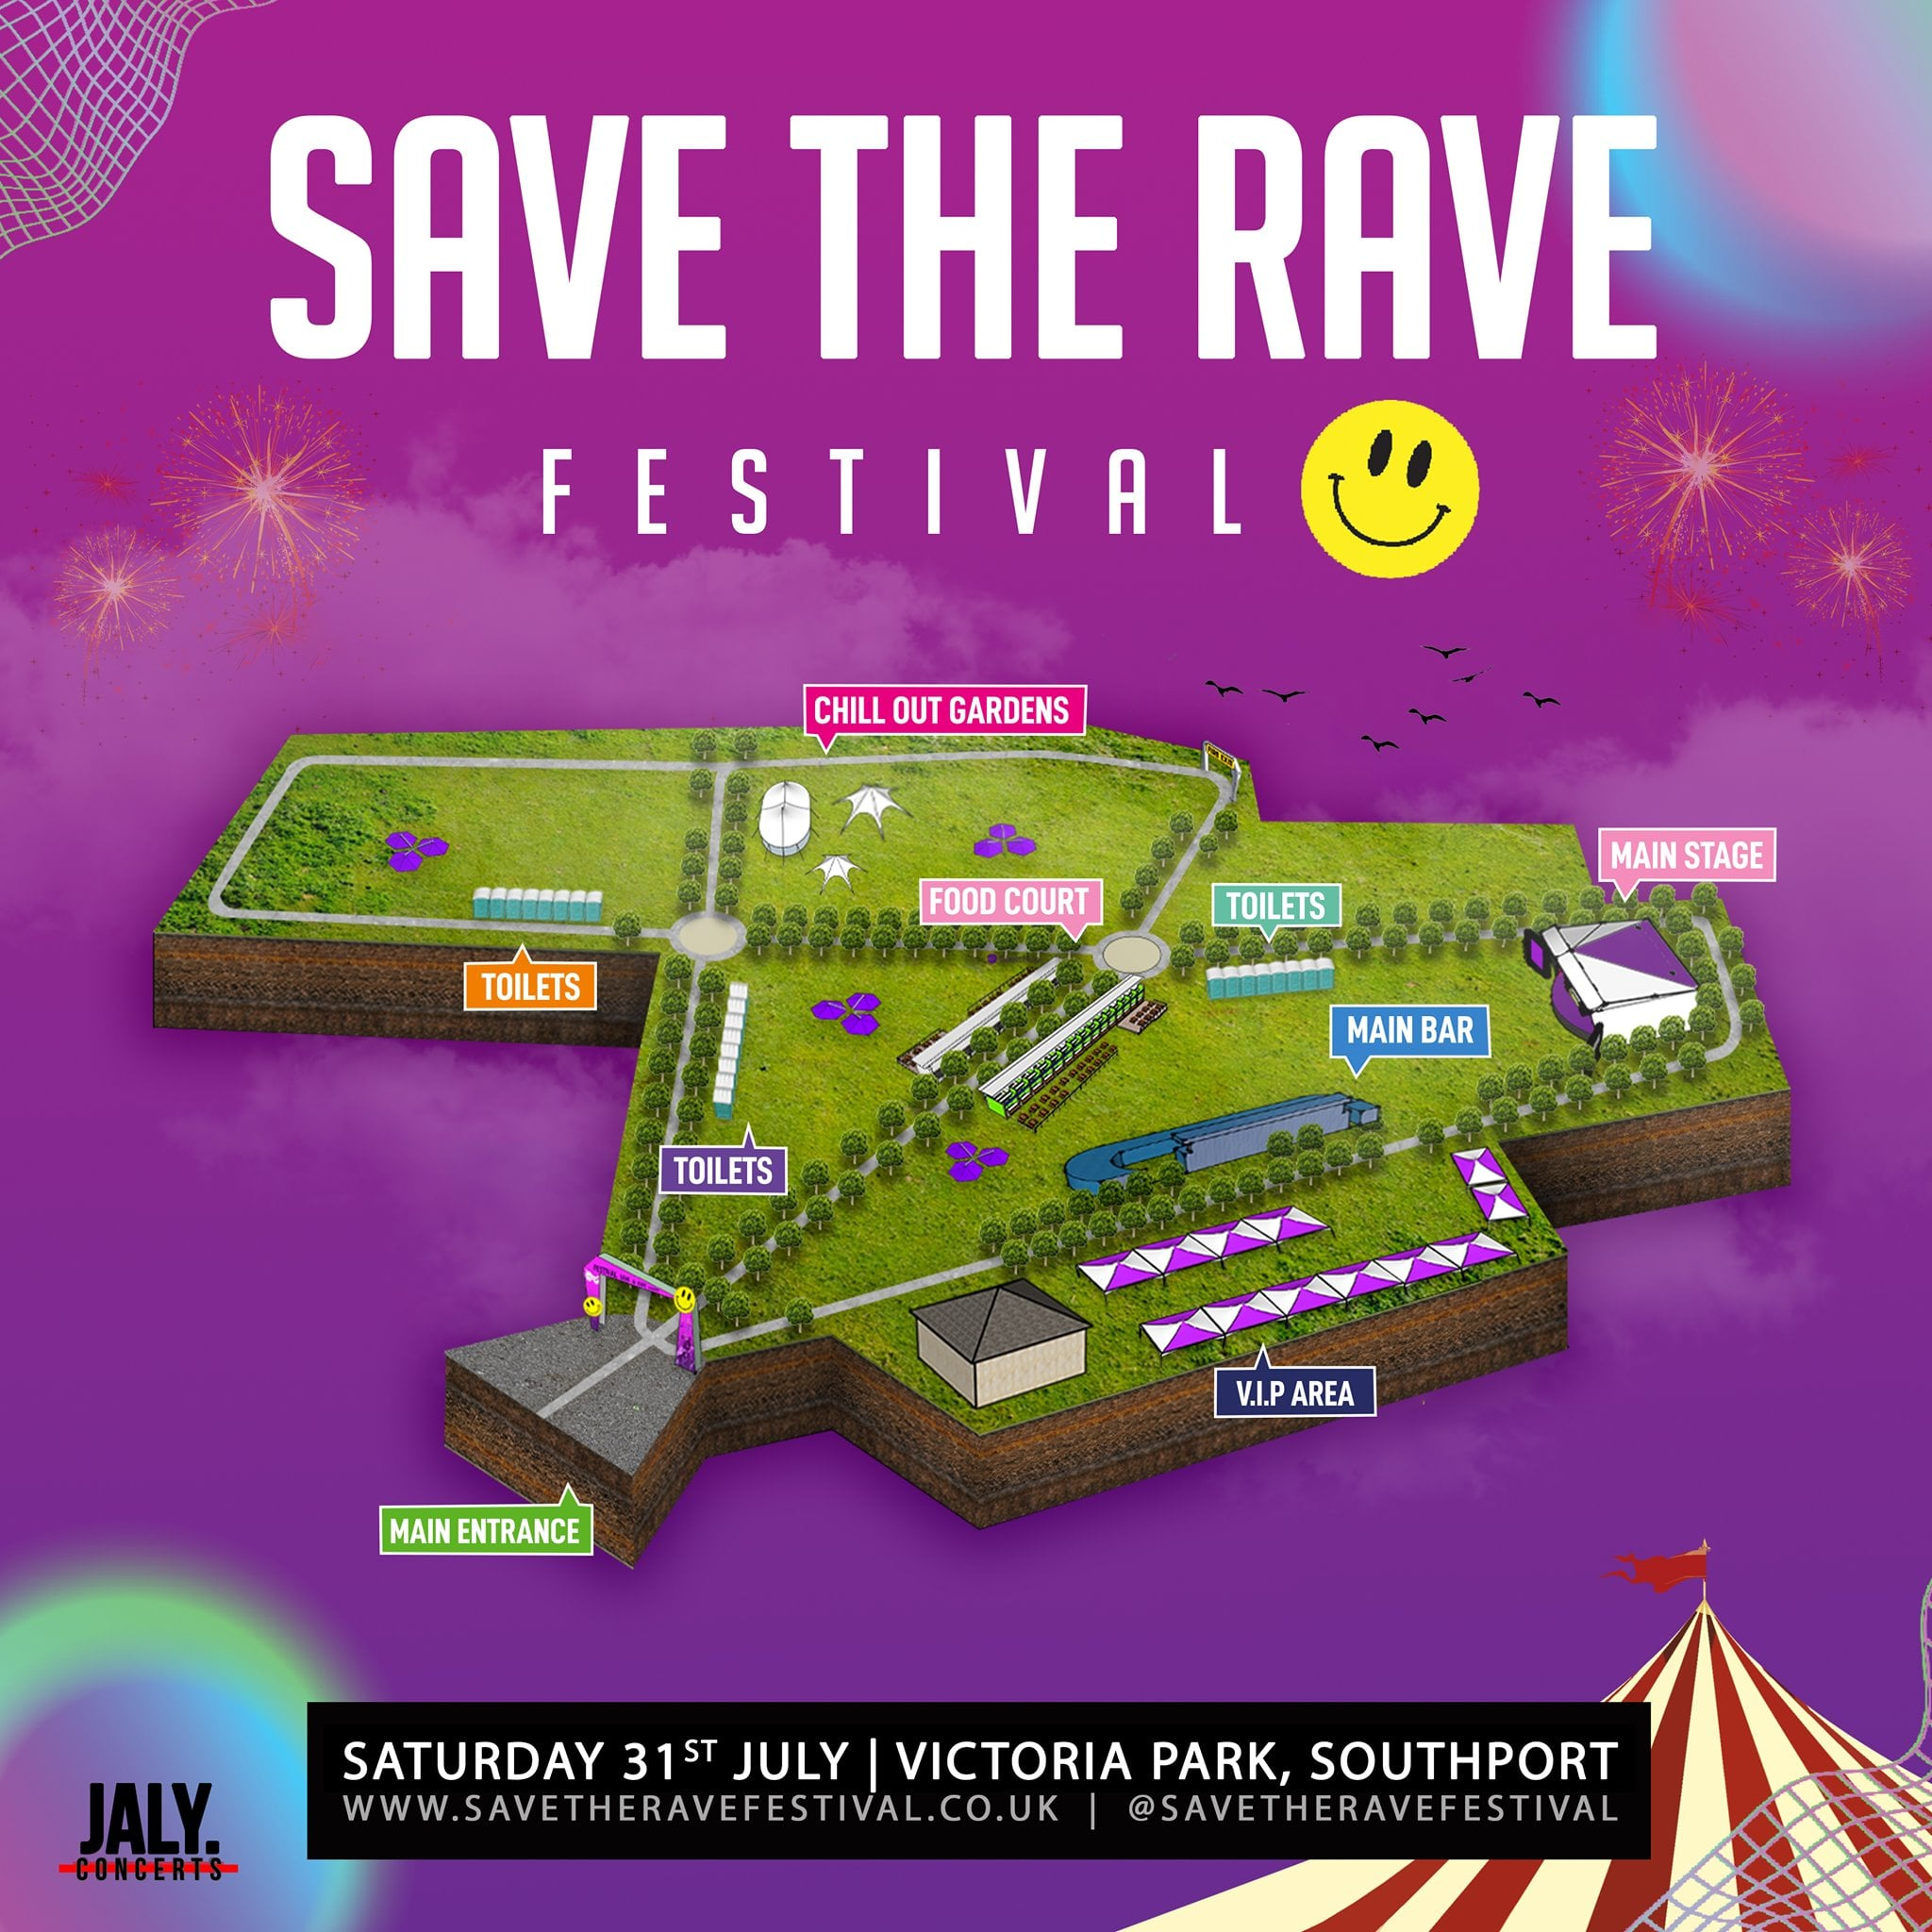 The Save The Rave Festival at Victoria Park in Southport